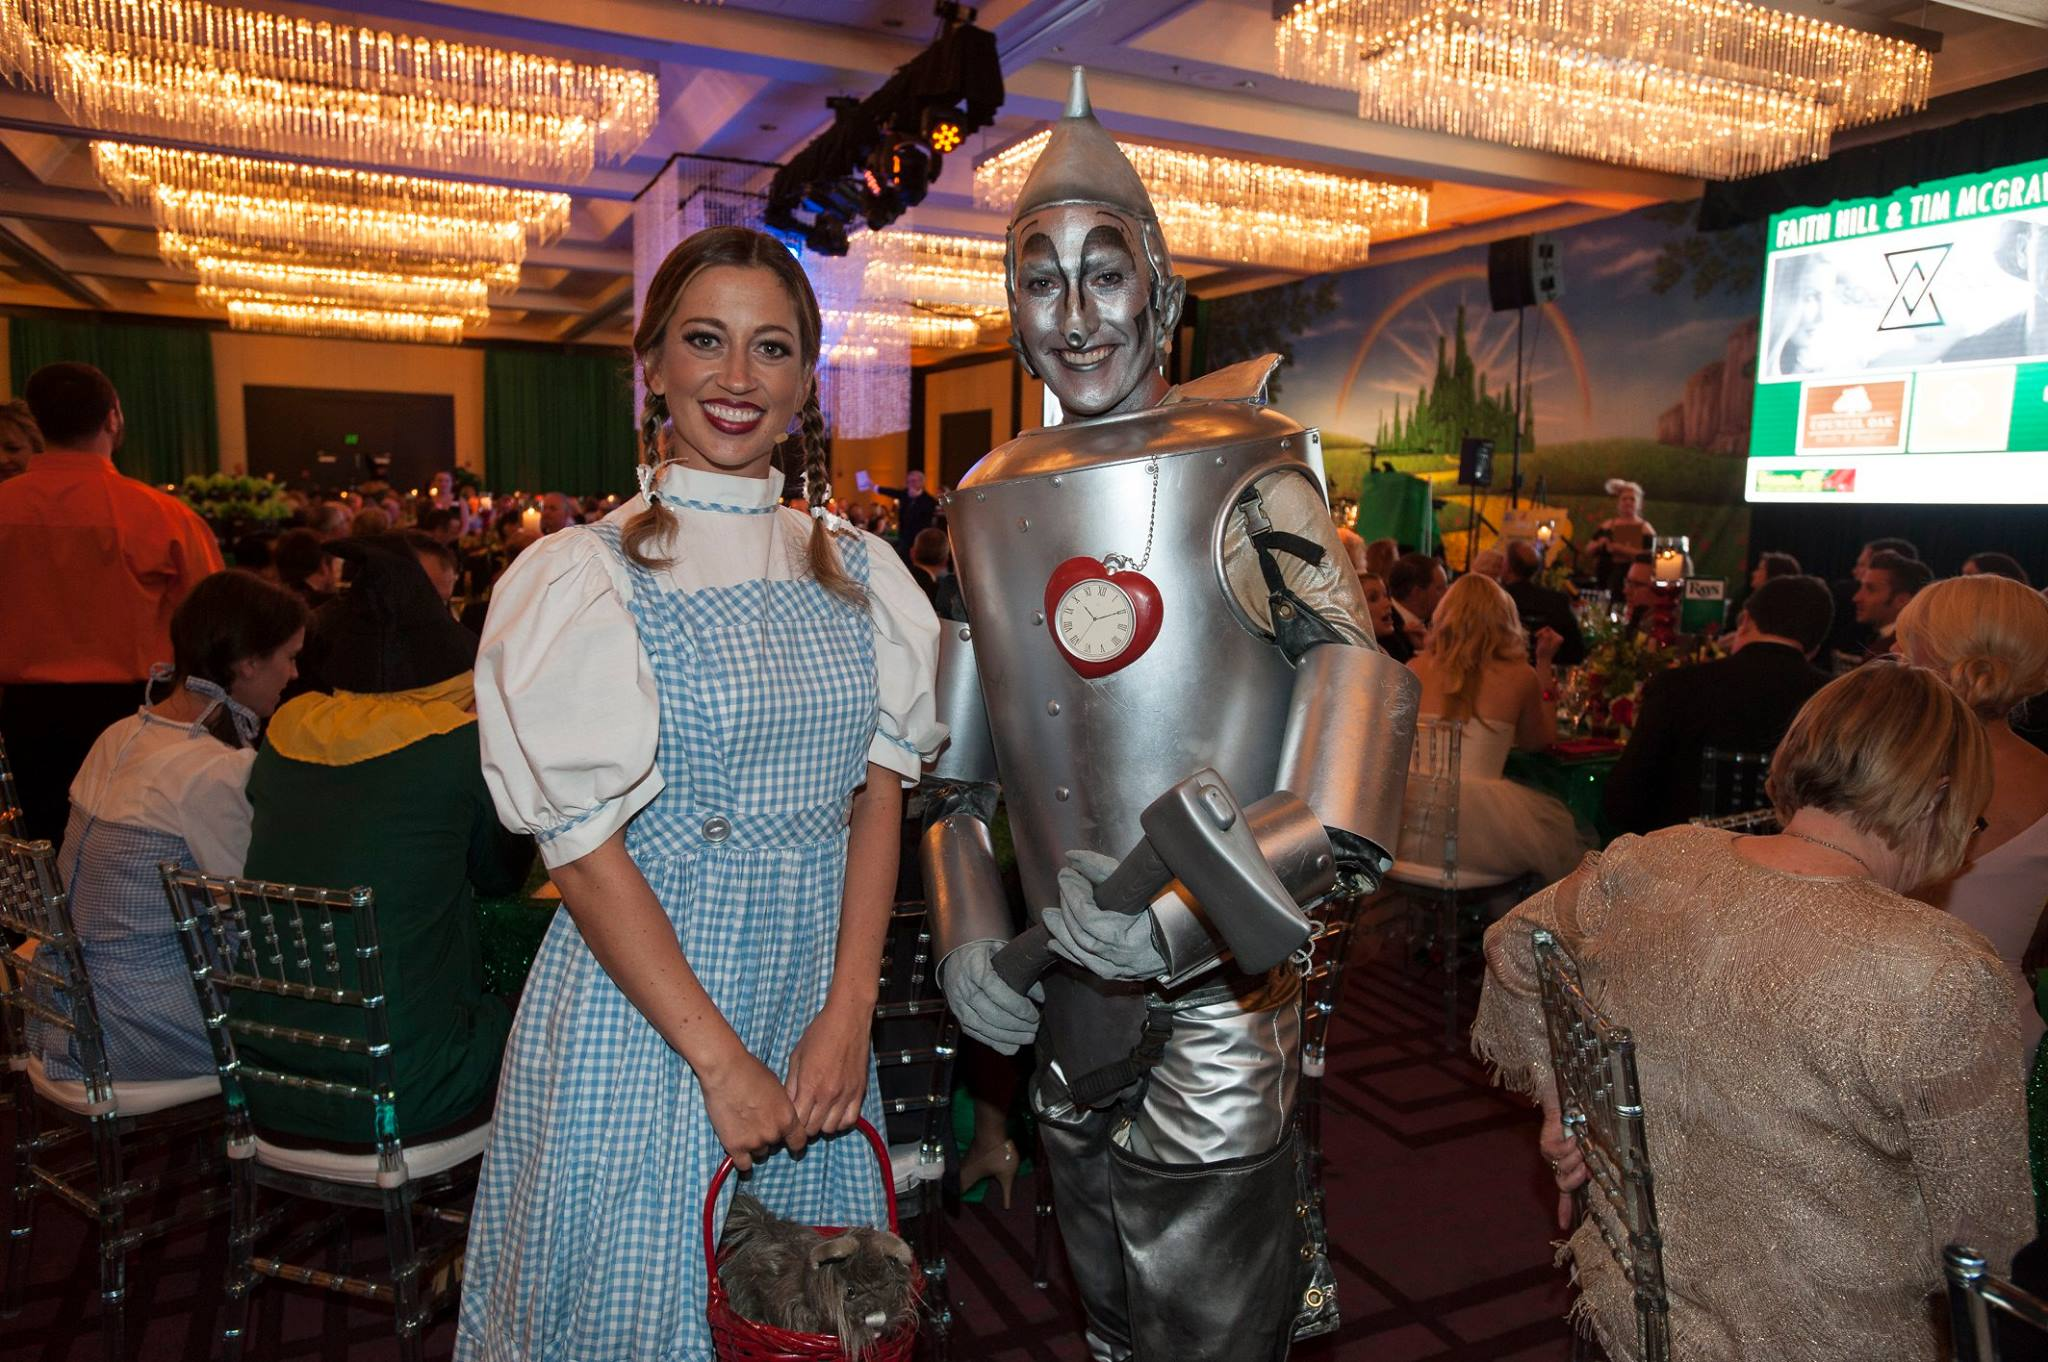 Dorothy and Tin man at the Wizard of Oz gala